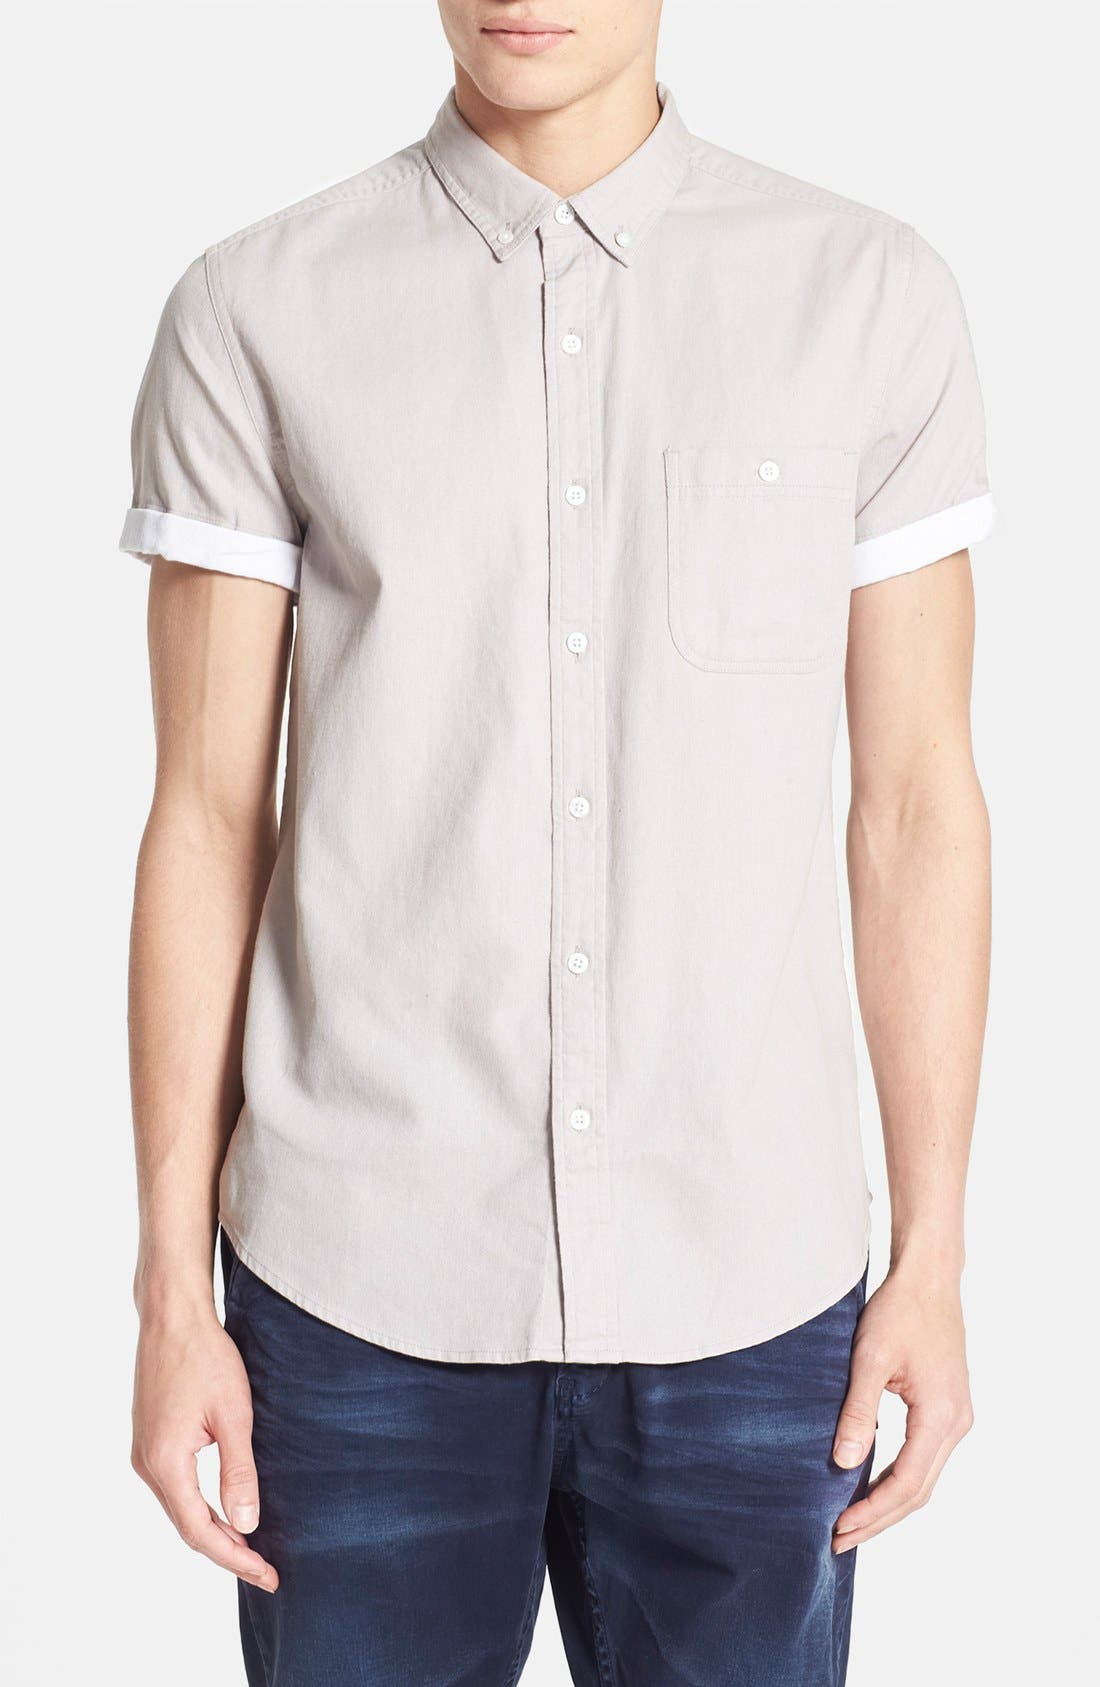 Main Image - Topman Contrast Trim Short Sleeve Cotton Shirt